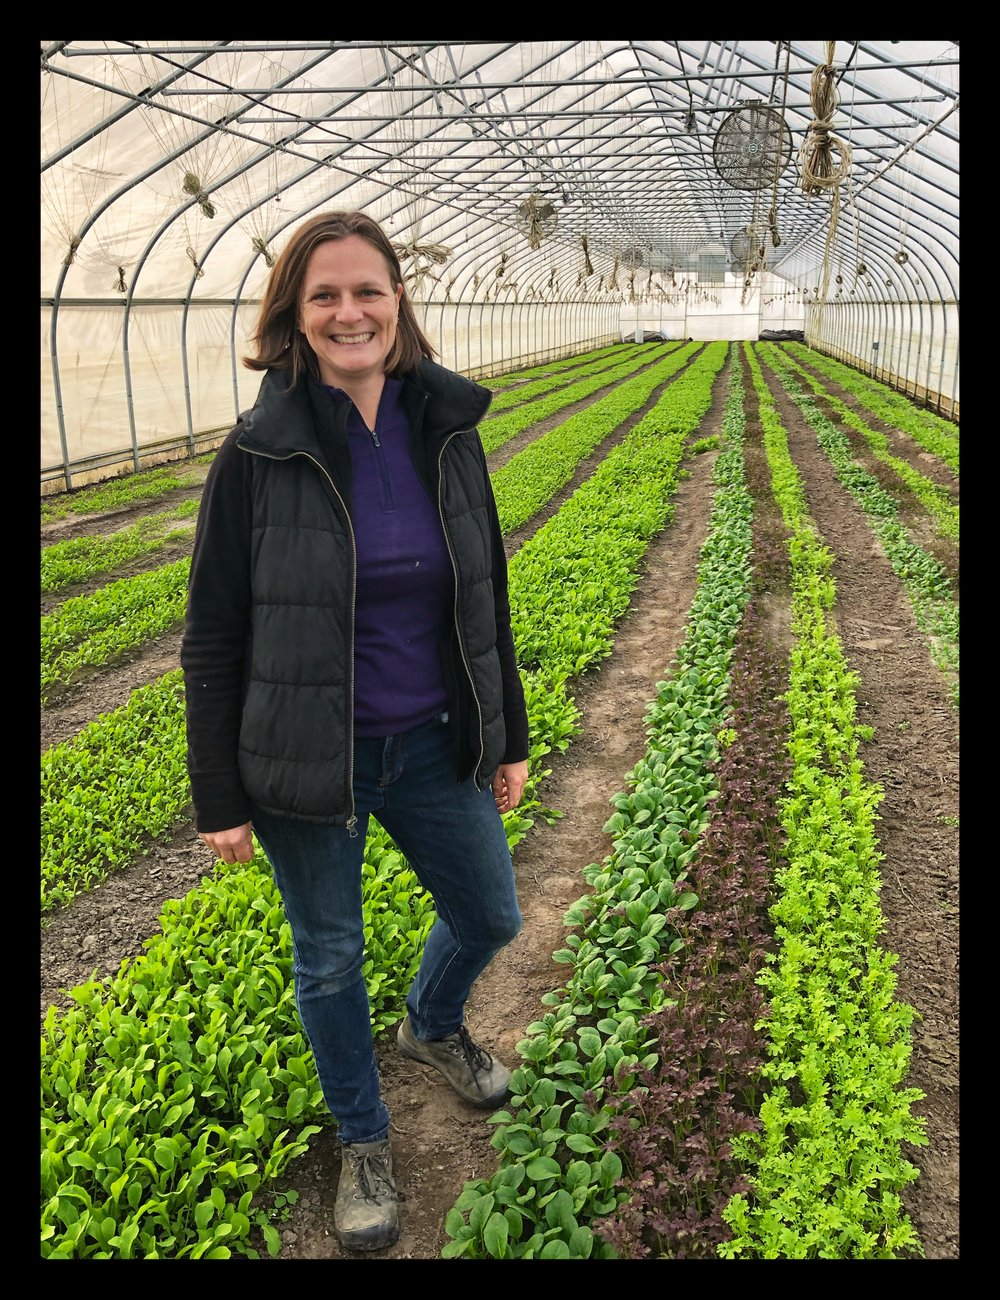 Farmer Caroline Pam on her incredible organic farm in Sunderland, Massachusetts. Look for Kitchen Garden Farm products at Russo's!